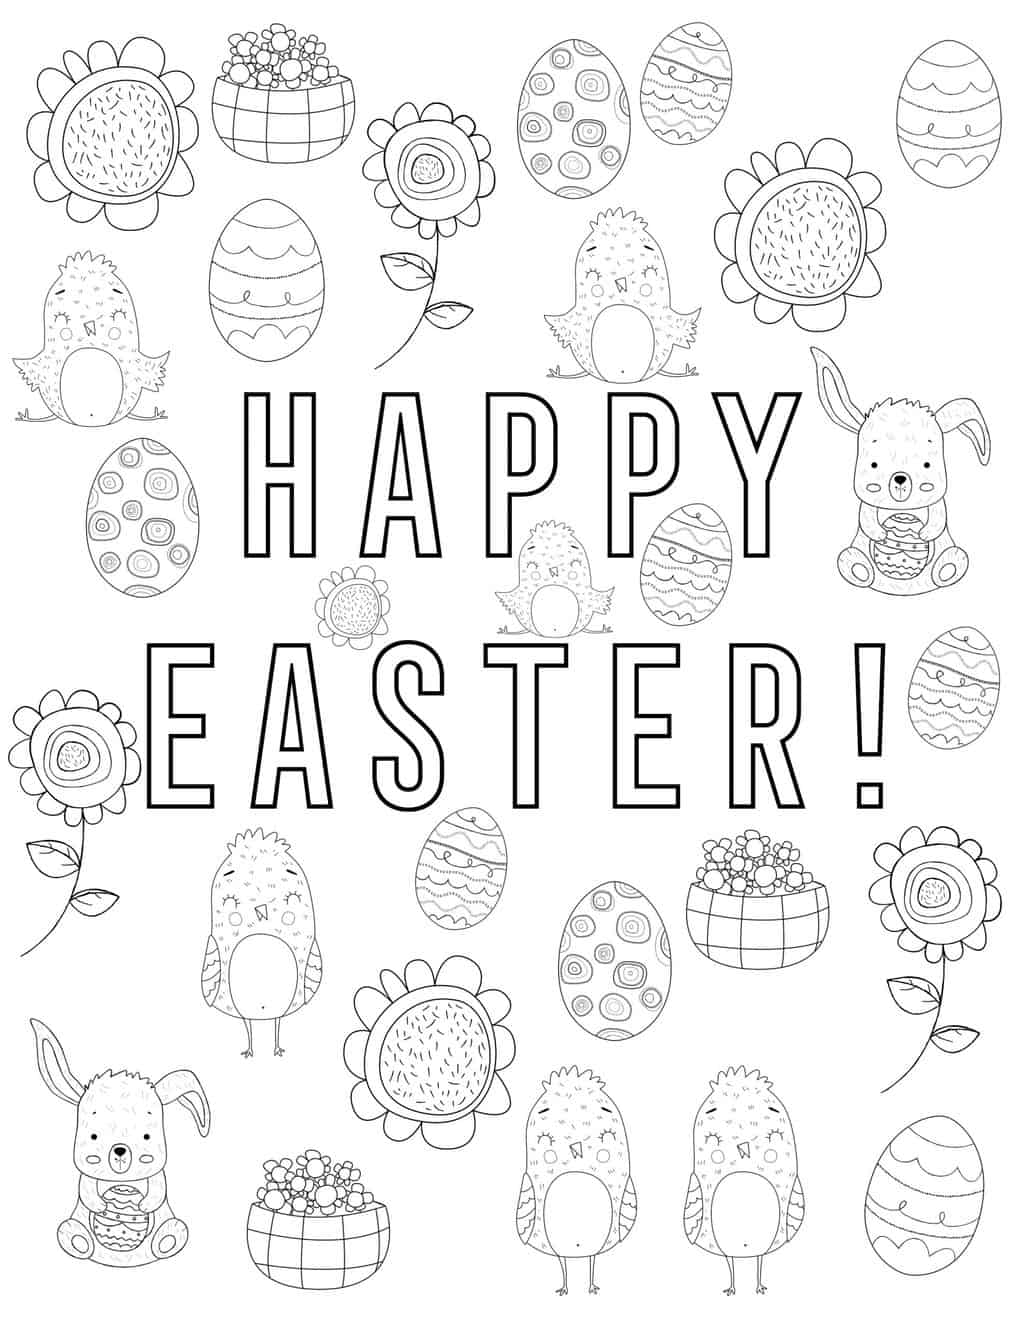 happy easter coloring page with blank easter graphics for kids to color